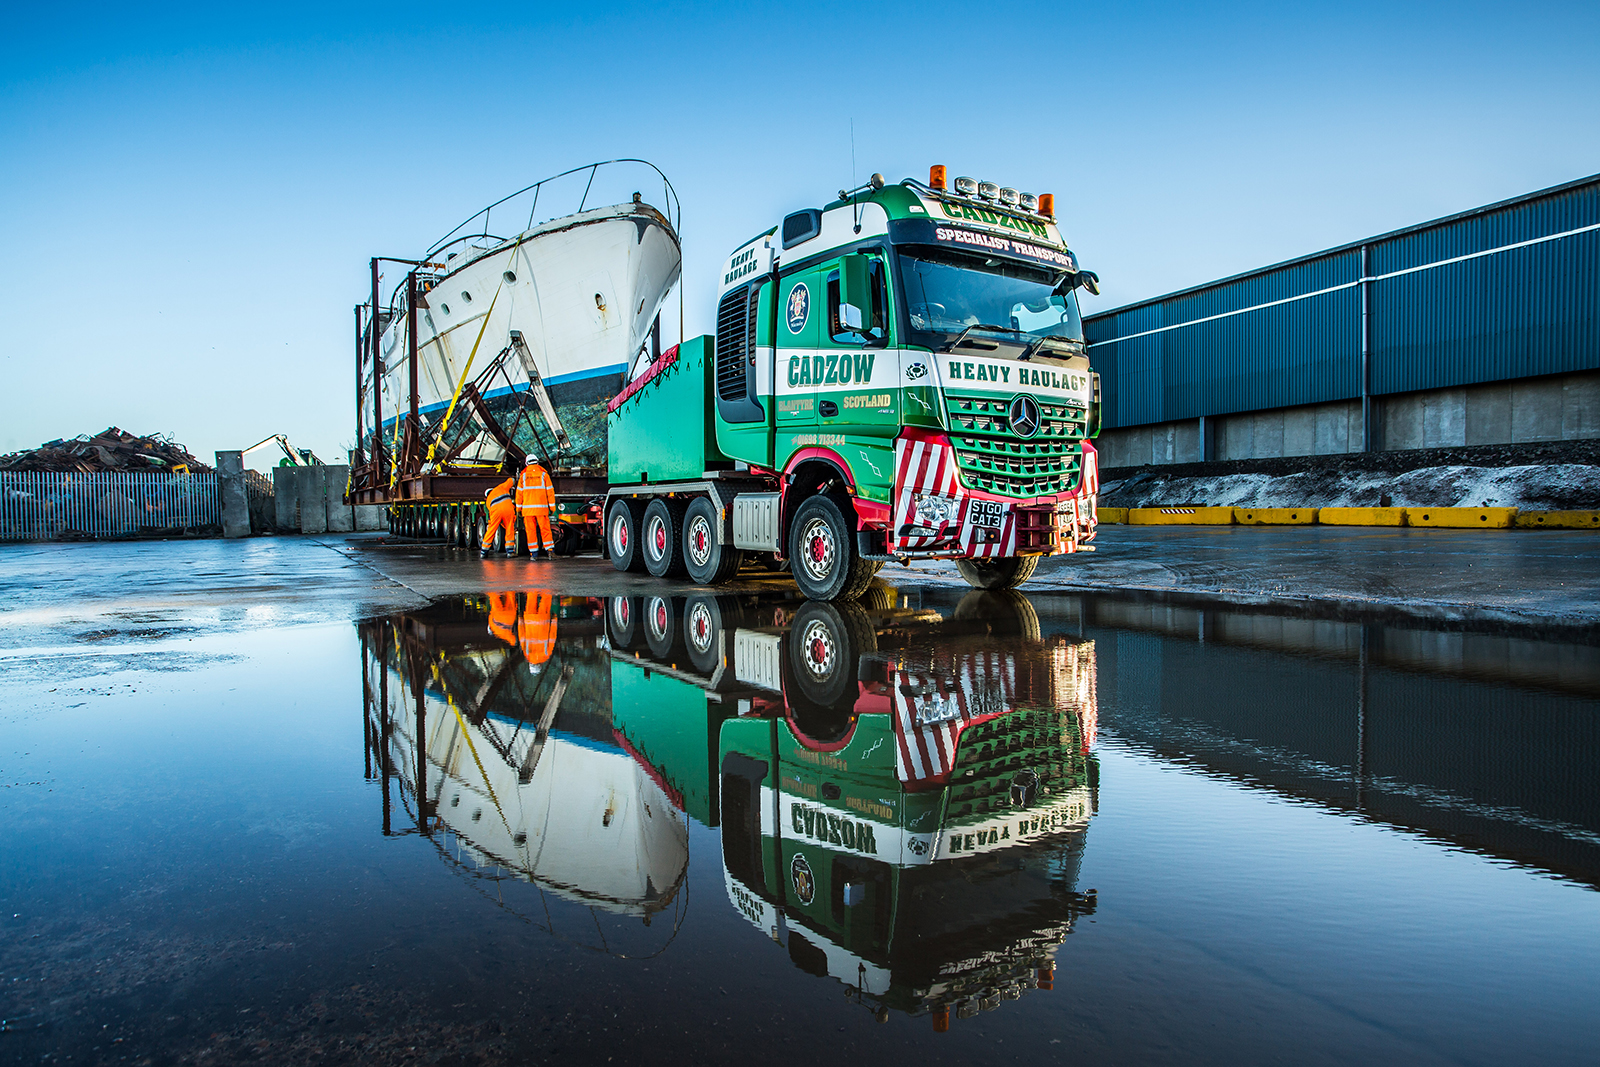 Boat Project for Cadzow Specialist Haulage